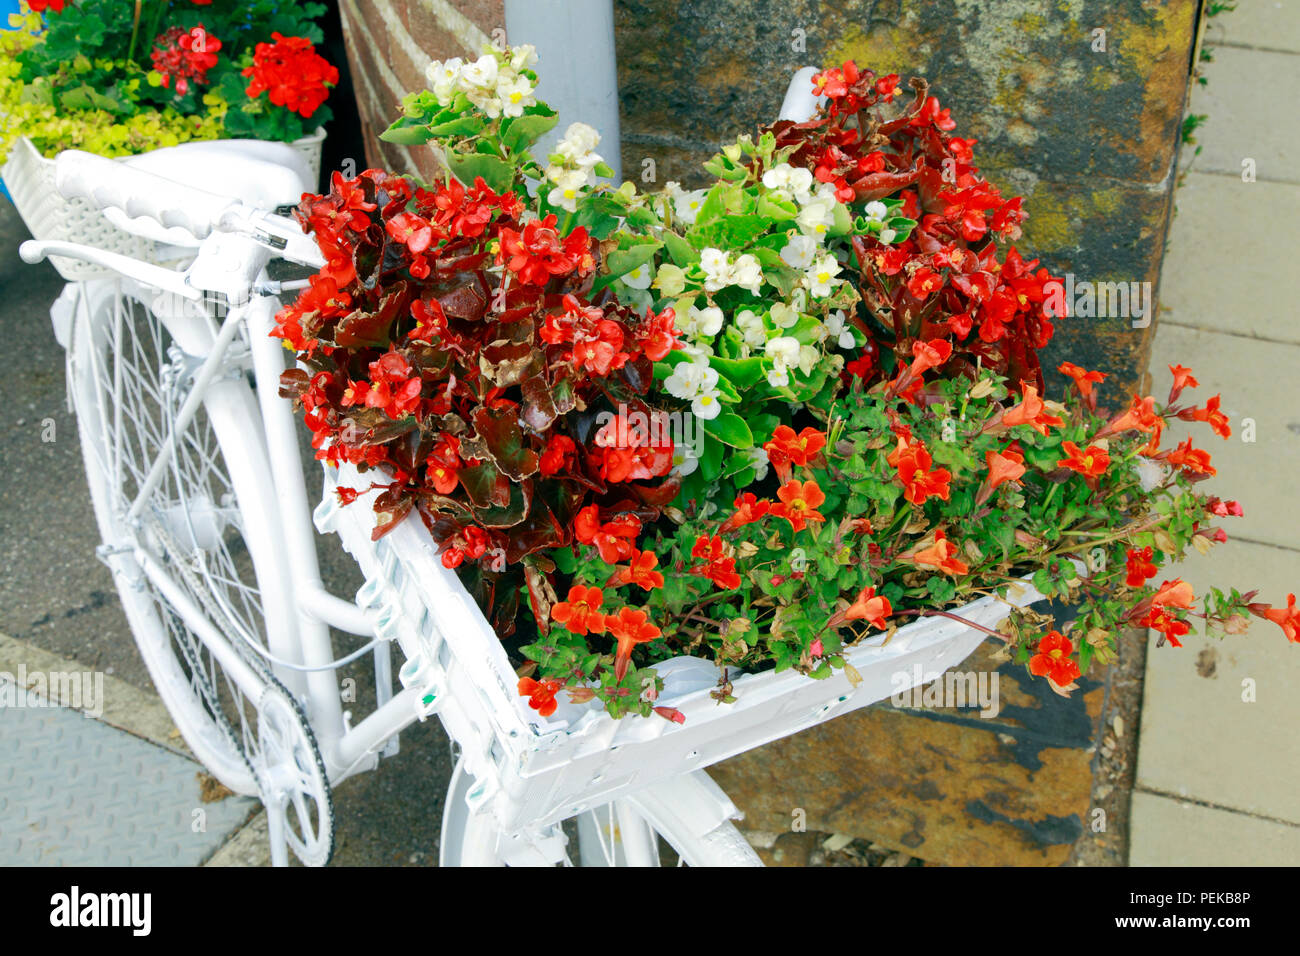 Hunstanton in Bloom, unusual plant container, white painted bicycle, bedding plants Stock Photo